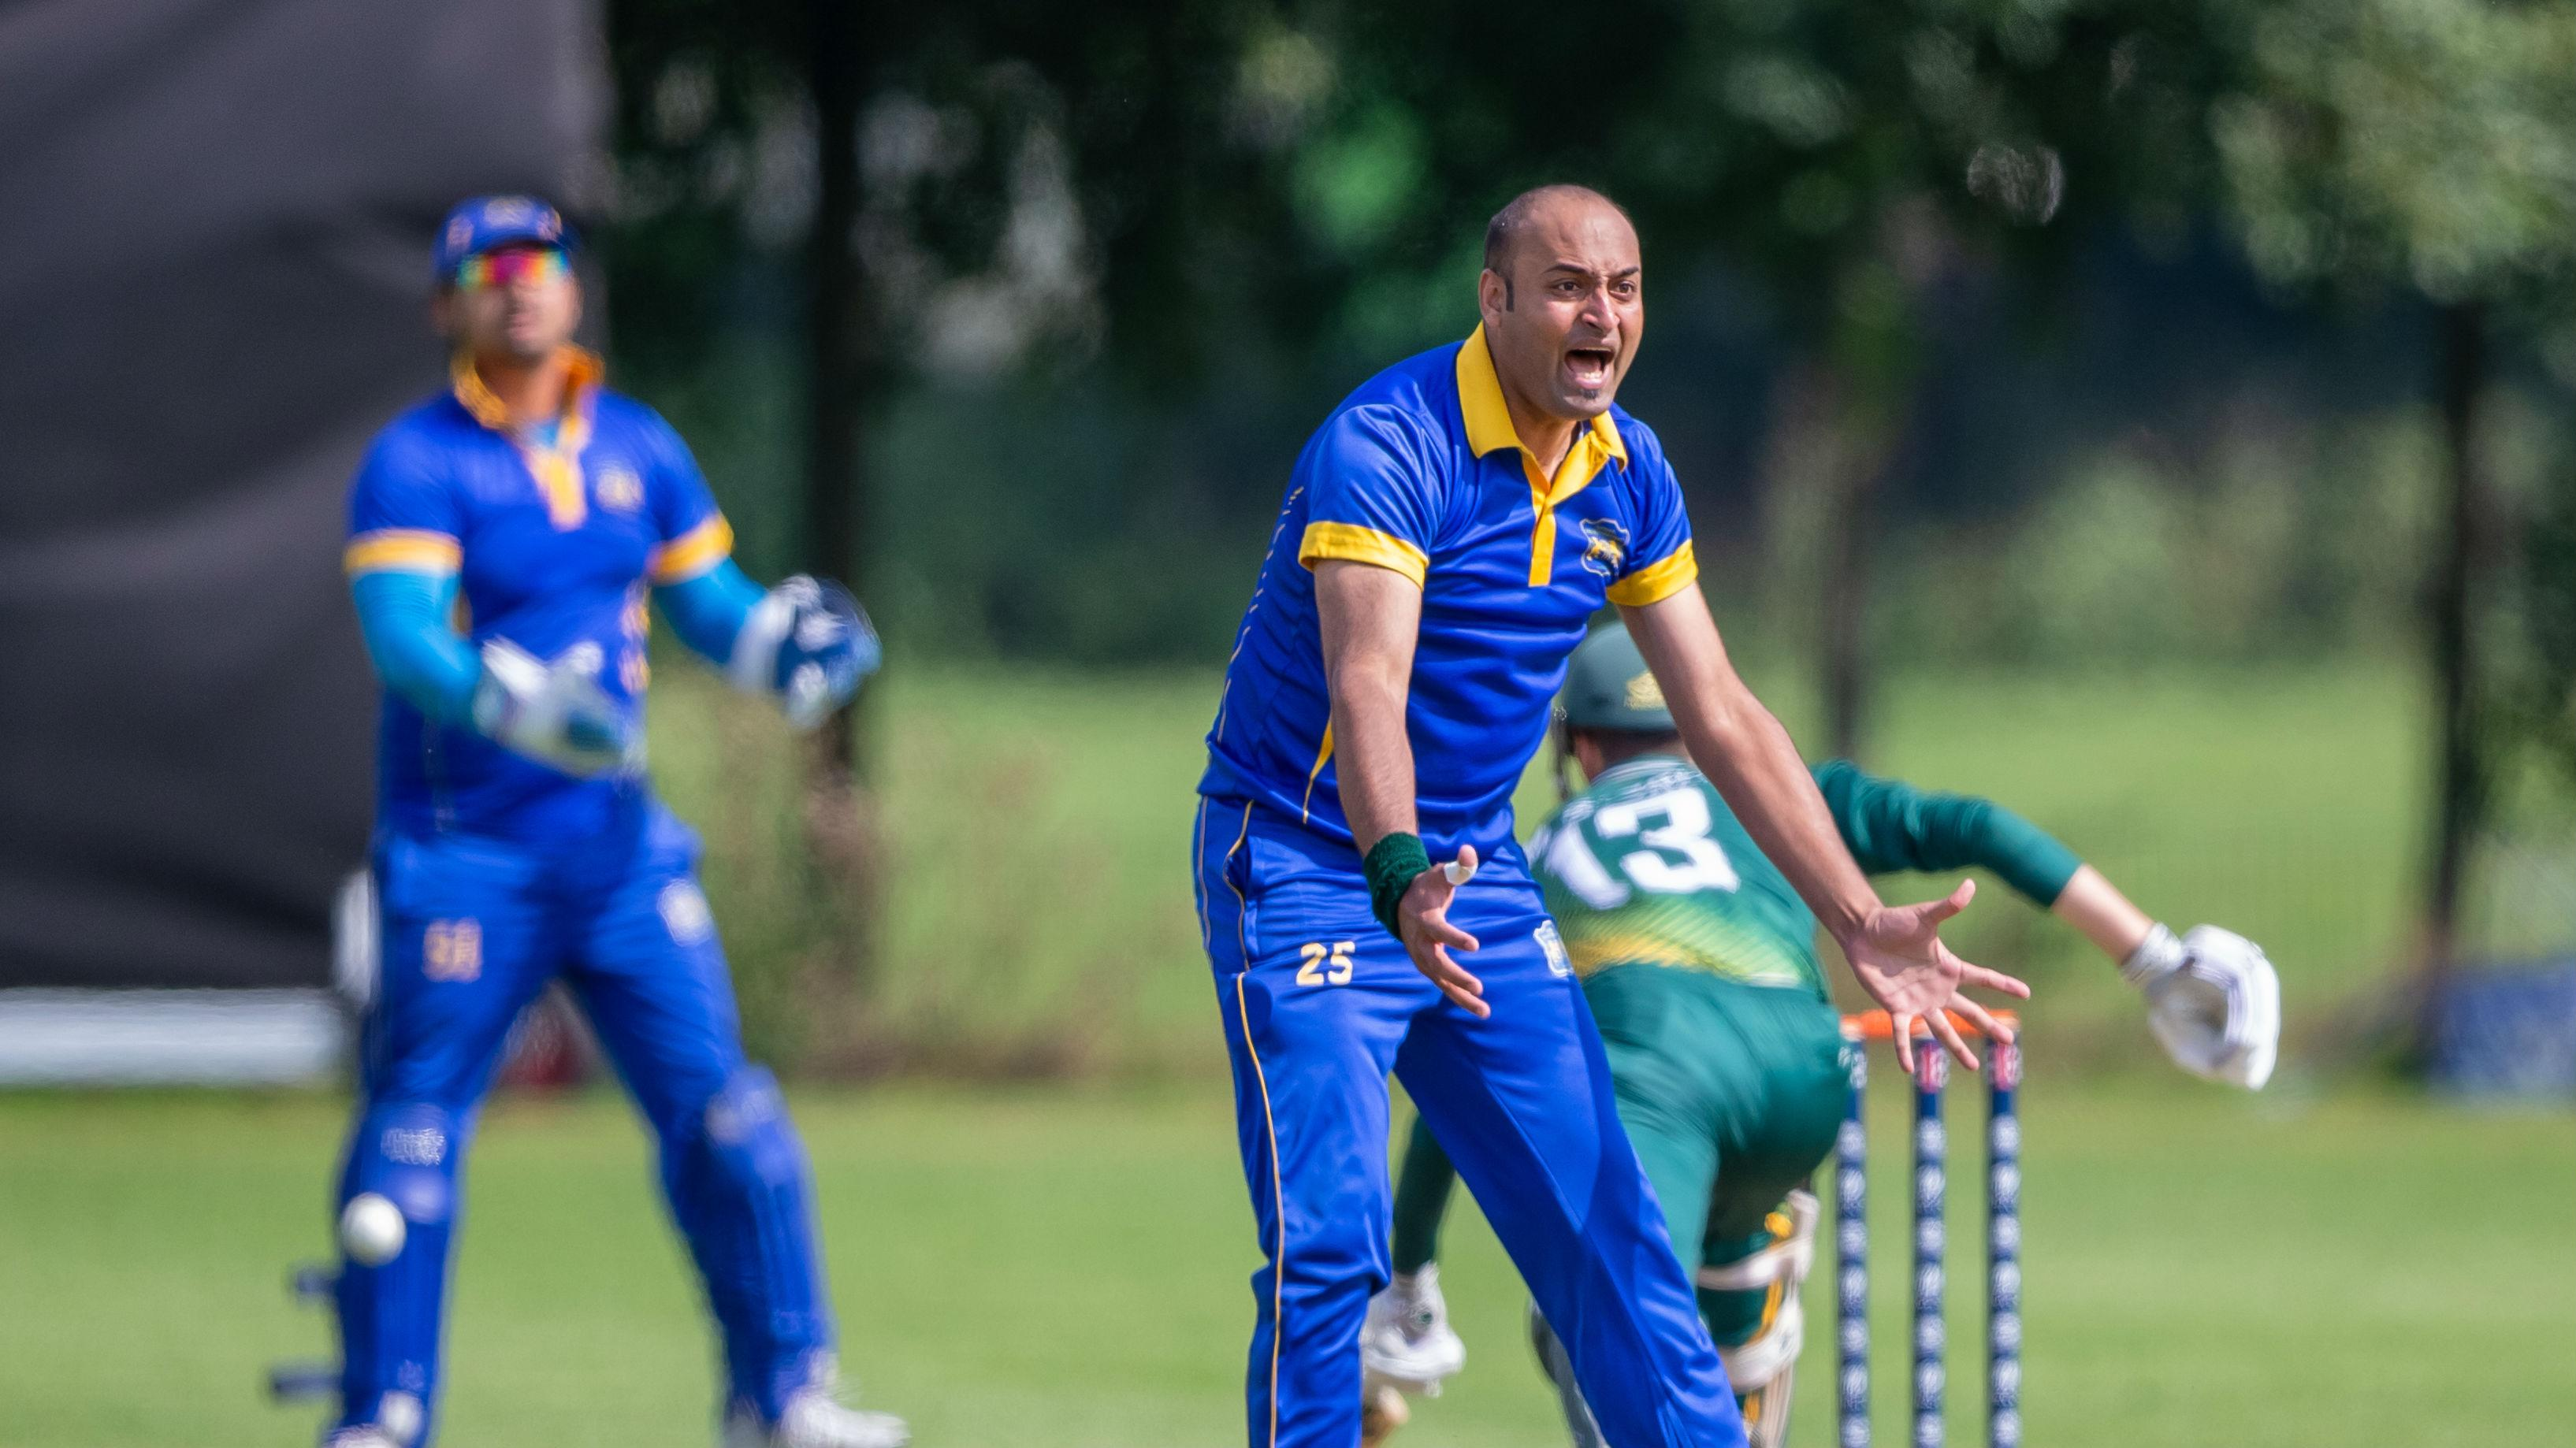 In Pics Icc Wt20 Europe Qualifier Matches From 1